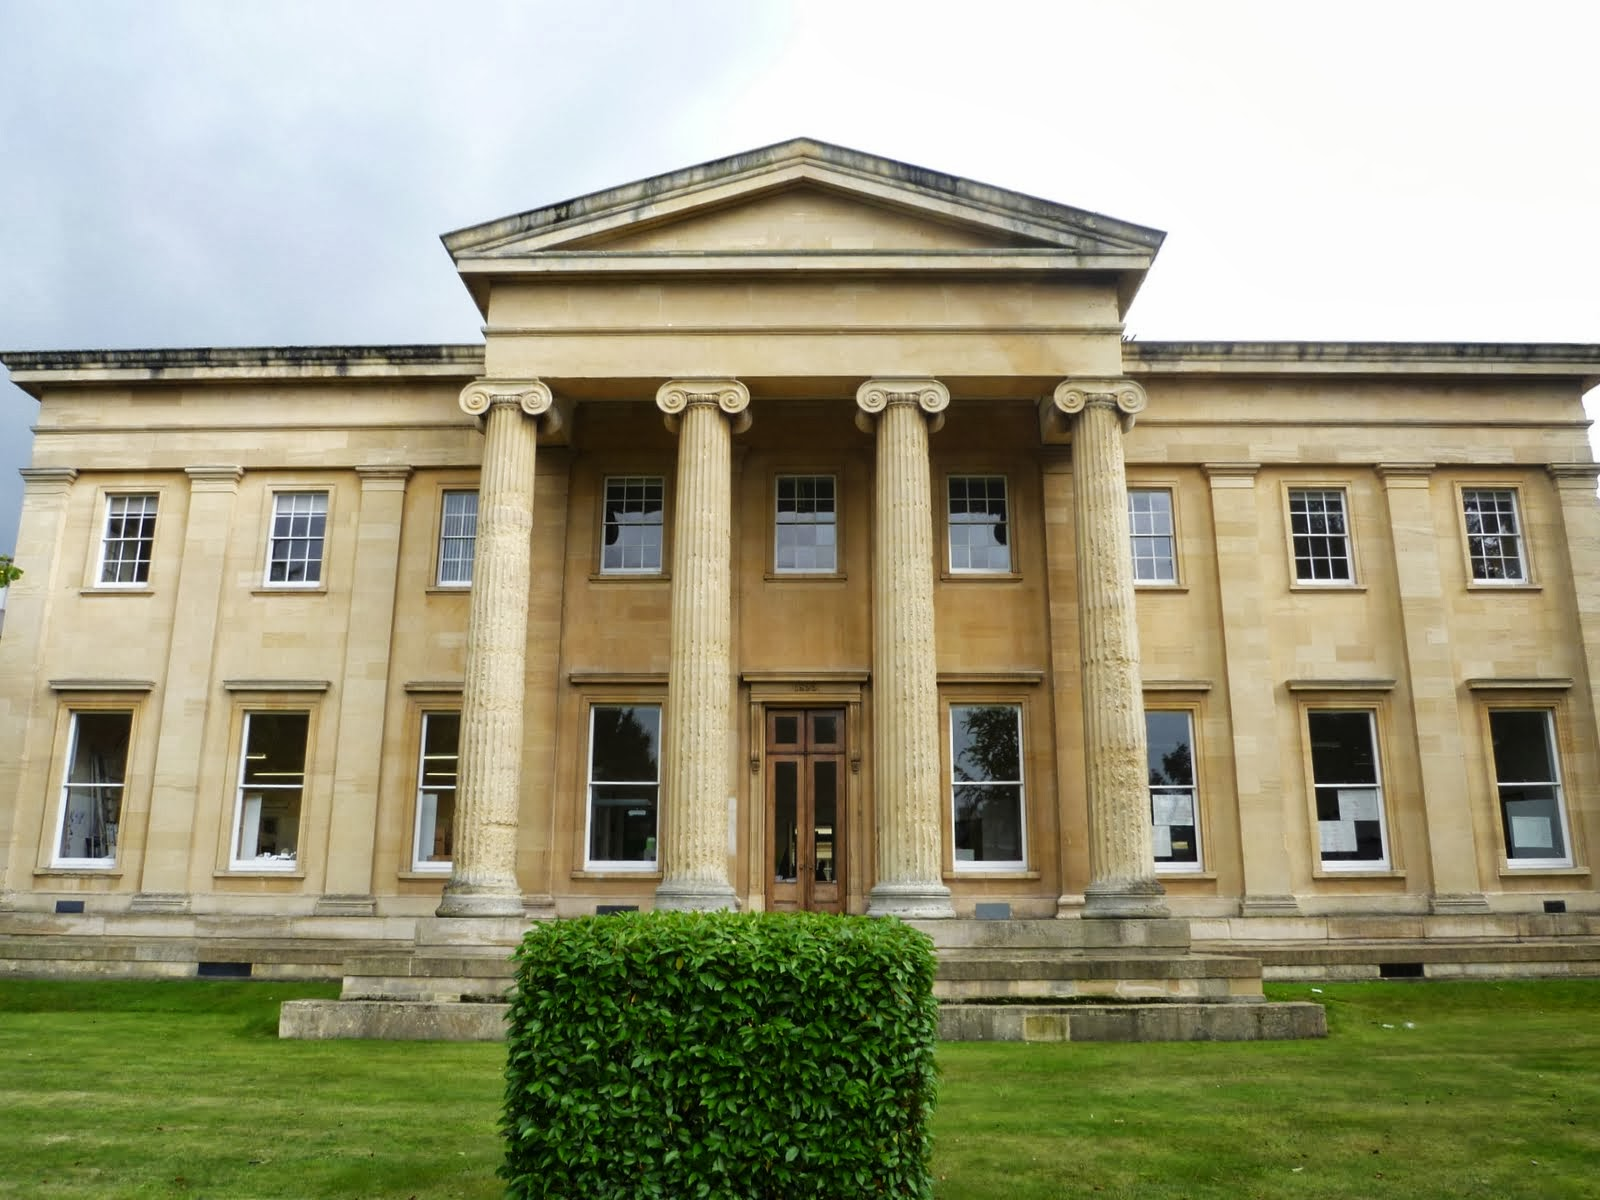 View of Thirlestaine House, Cheltenham, Home of Sir Thomas Phillipps. View from Bath Road. Photograph by Philip Ratzer on 2 October 2013. Image via Creative Commons.